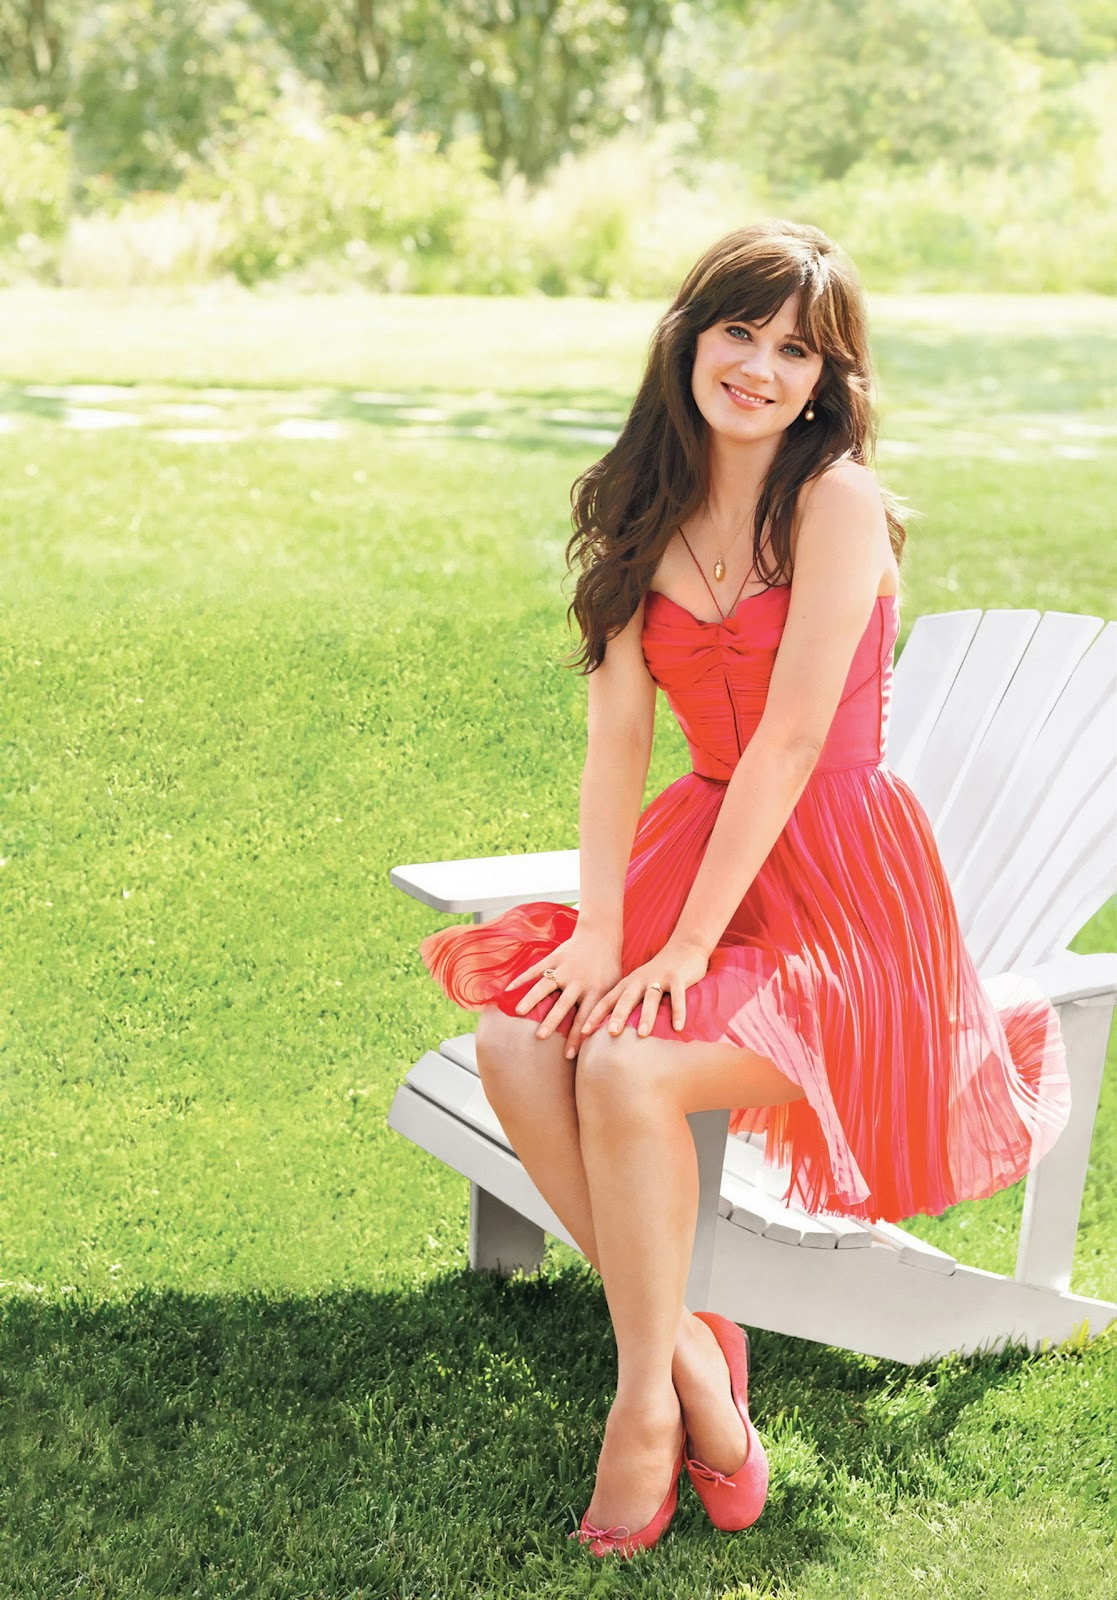 49 hot photos of Zooey Deschanel - a gift from God to